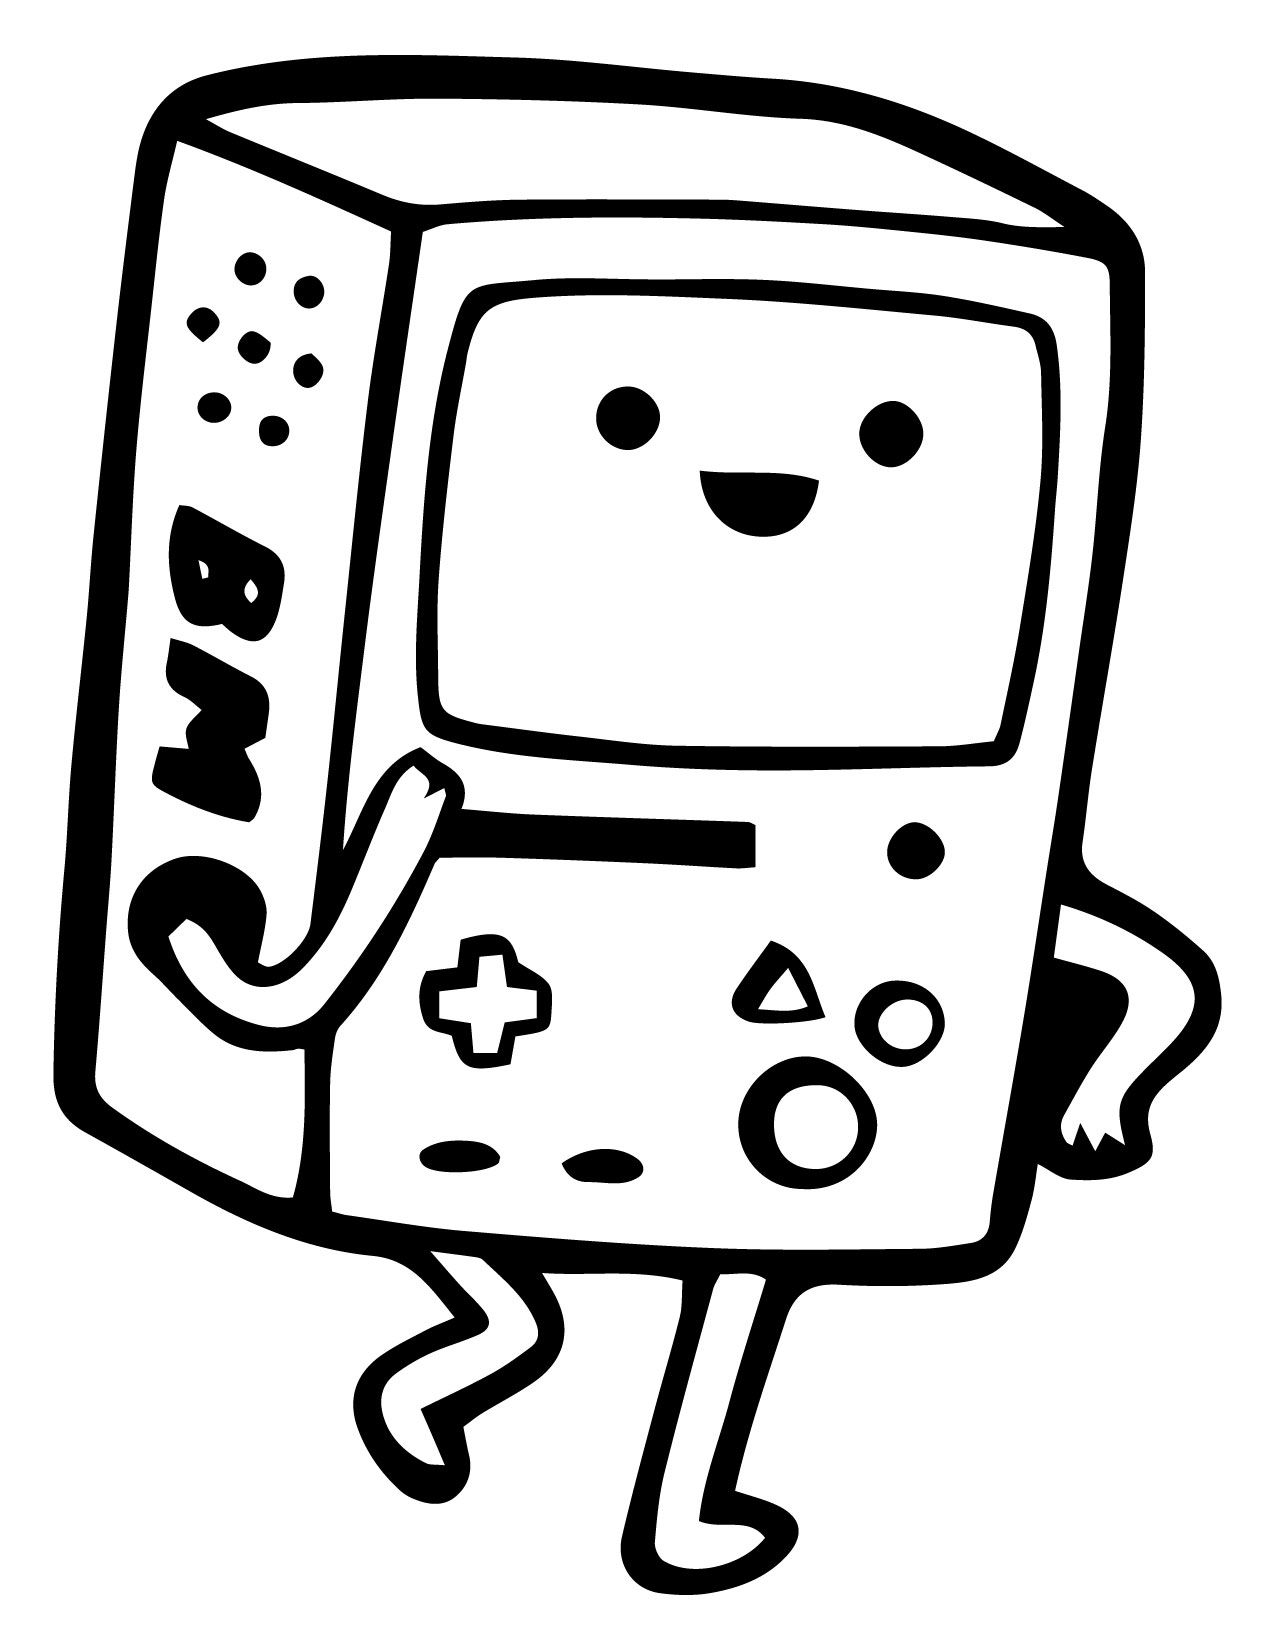 Adventure Time Coloring Page Quick Saves Adventure Time Coloring